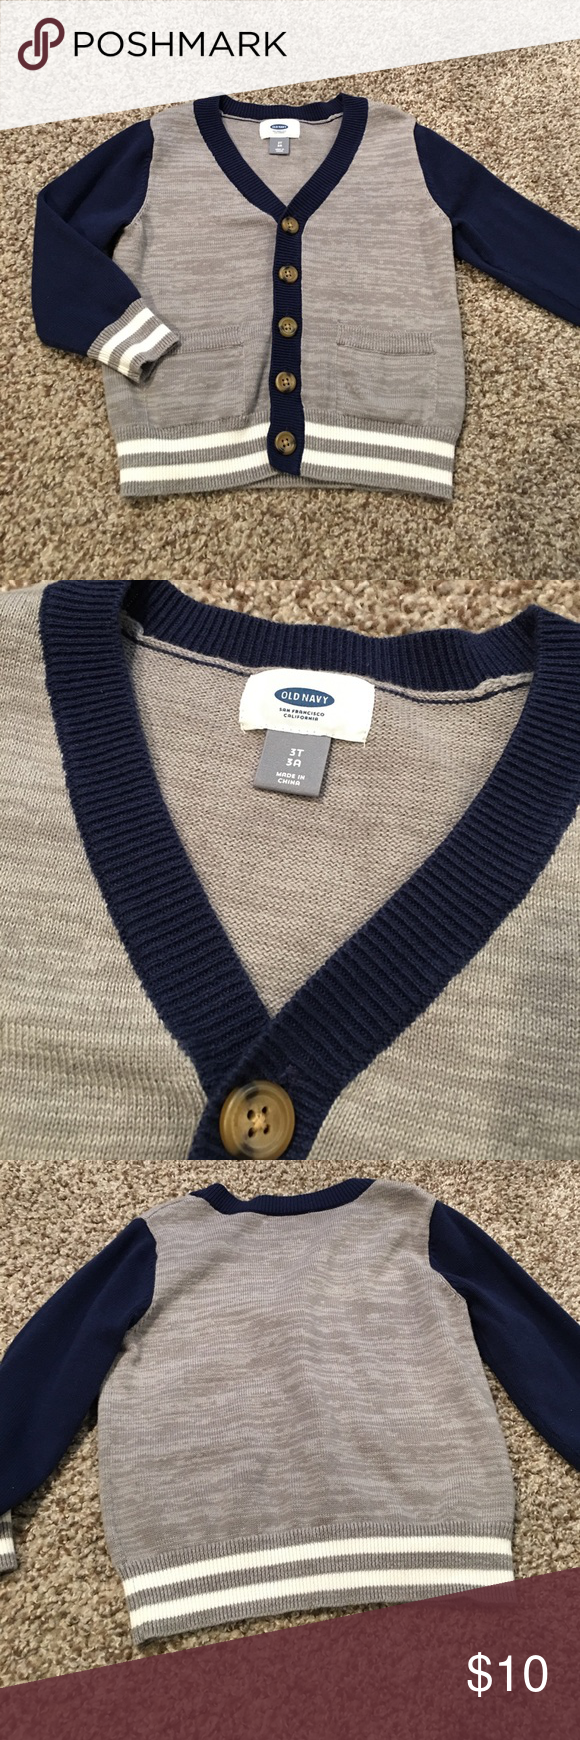 Toddler Cardigan Toddler old navy cardigan.  Blue grey and white. Never worn Old Navy Shirts & Tops Sweaters